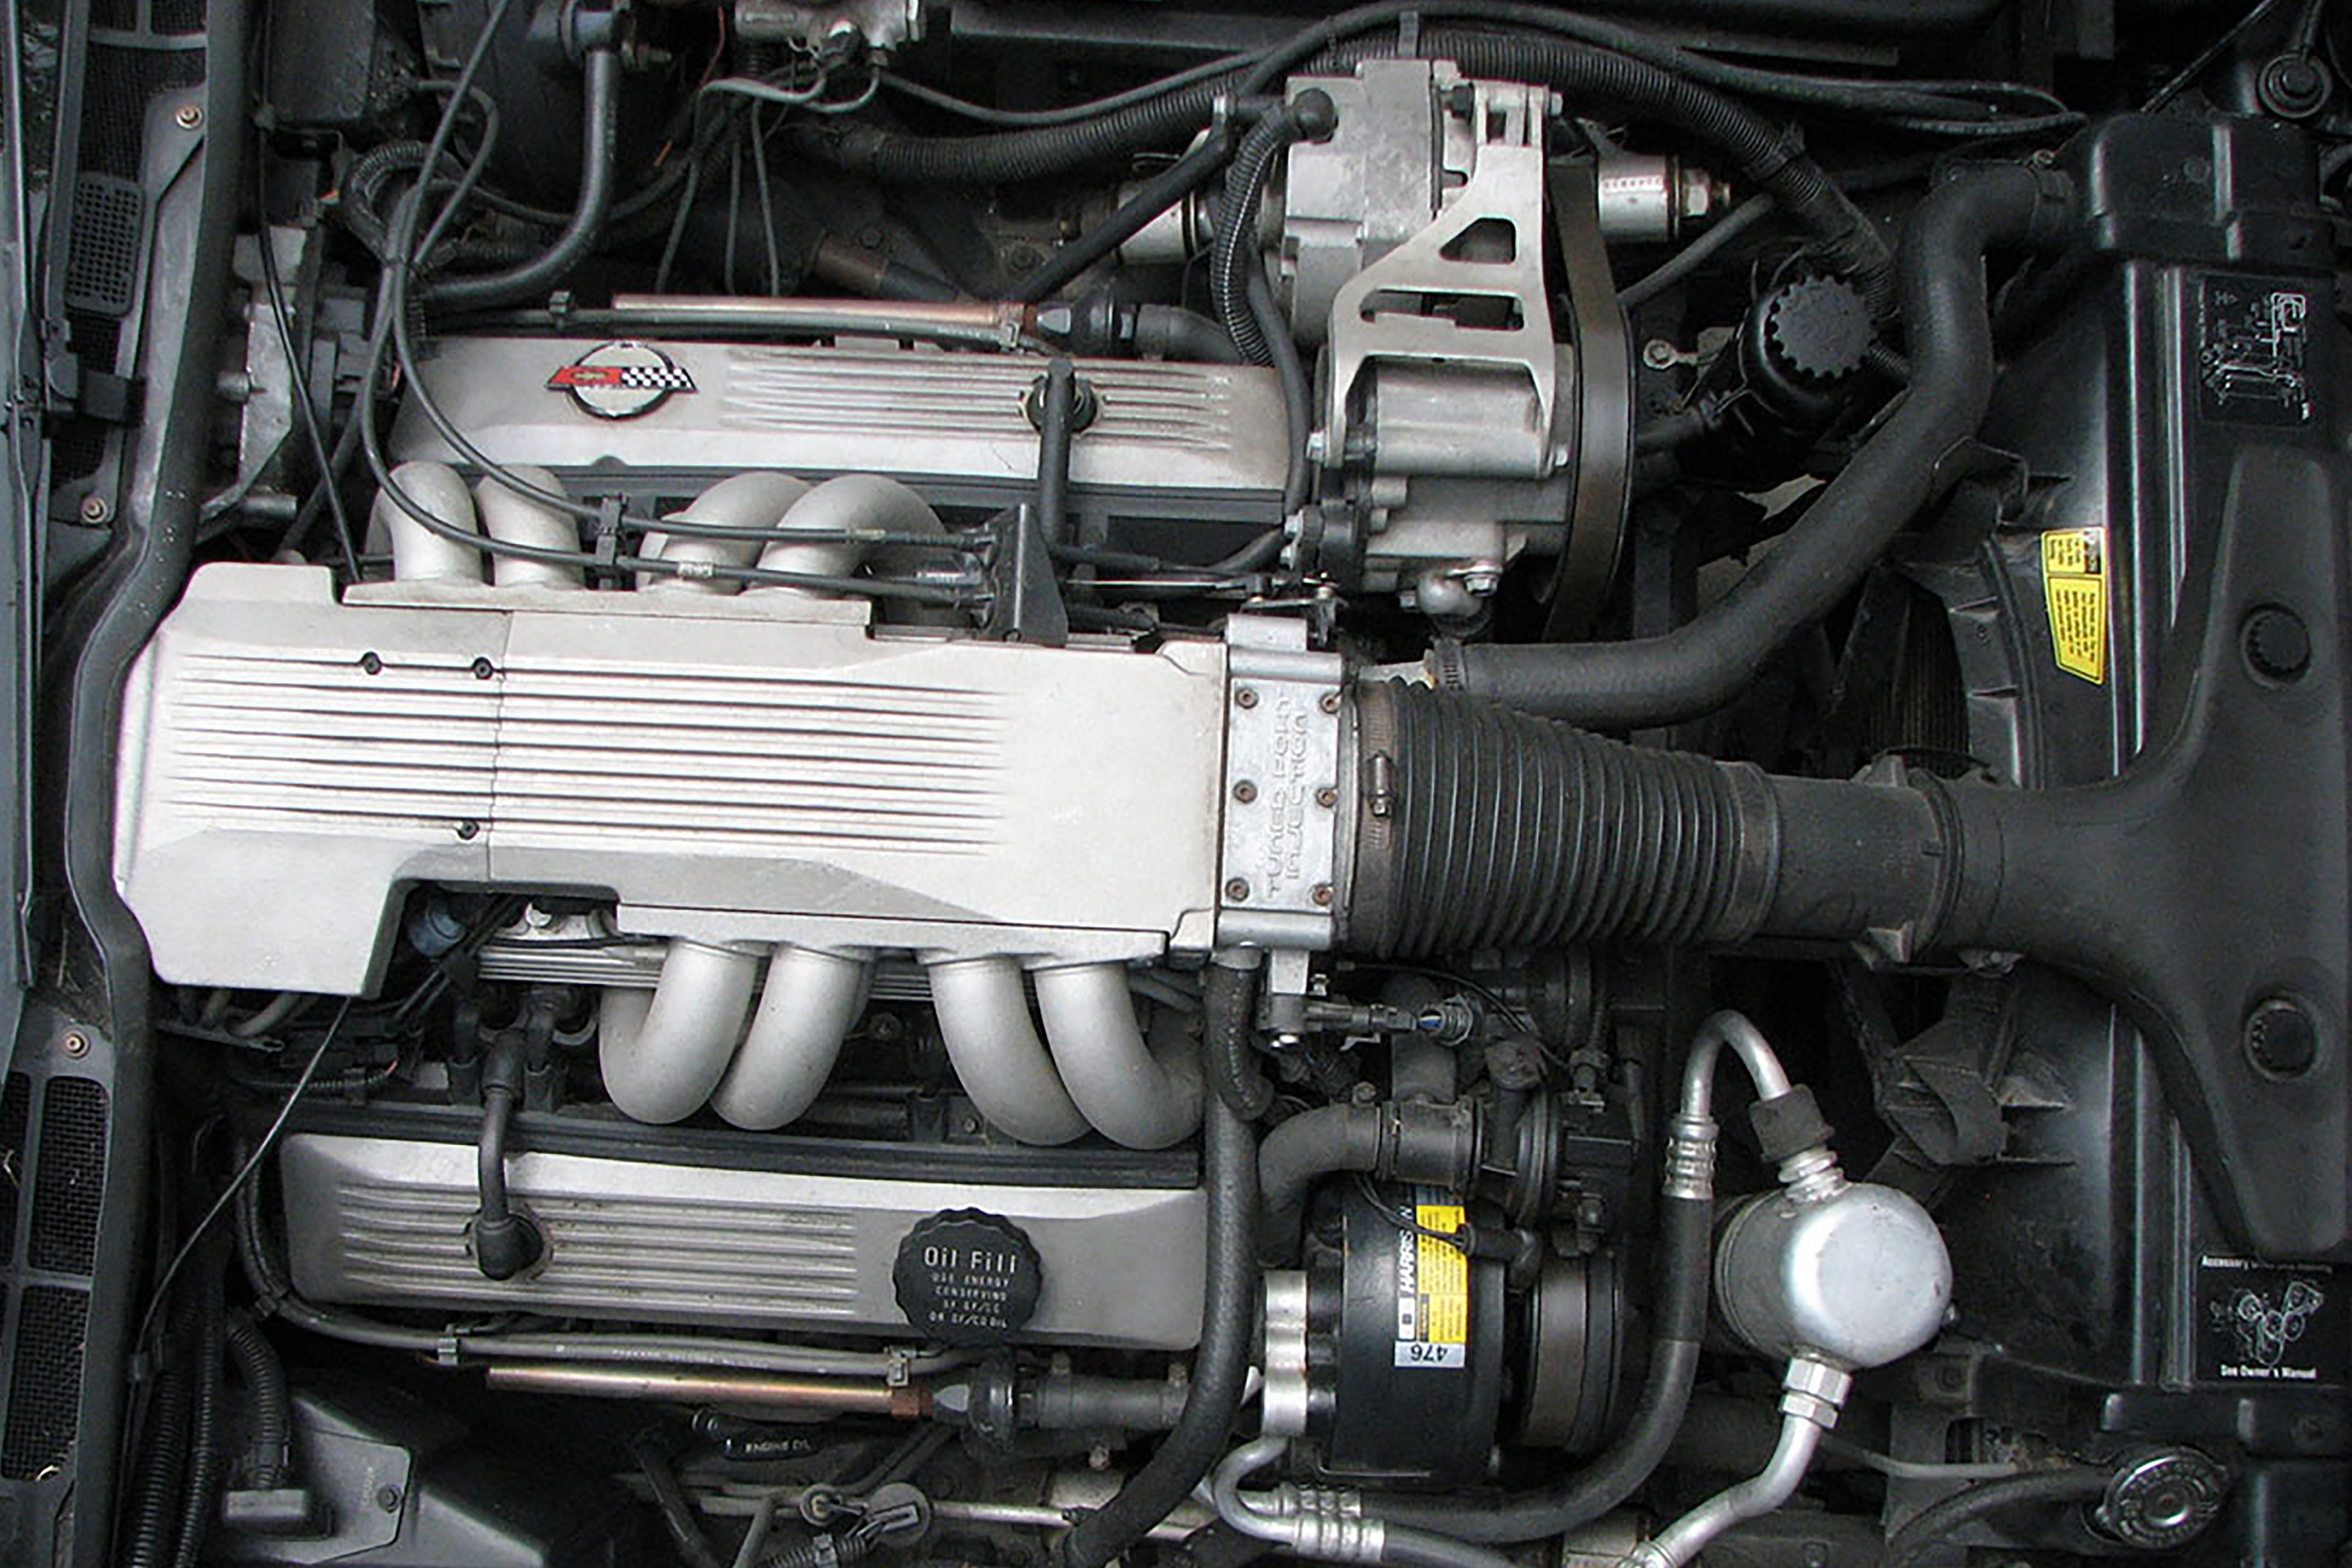 l81 engine specifications it still runs 4 Cylinder Engine Diagram